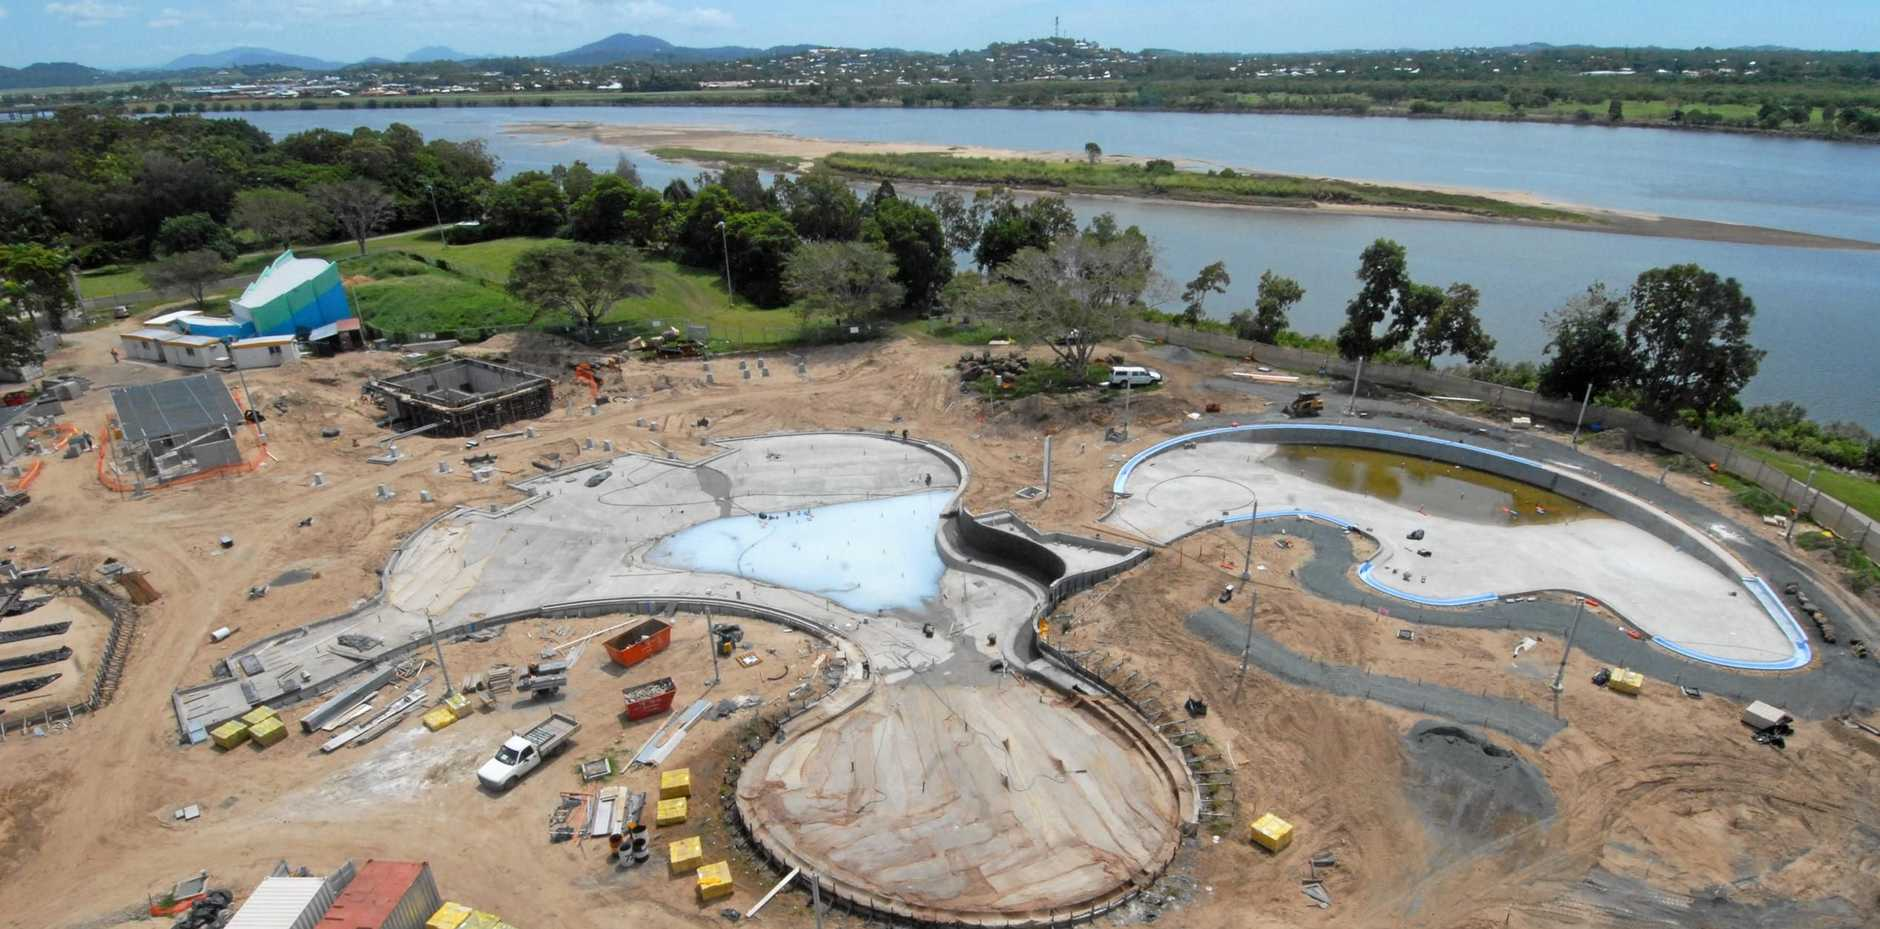 The Bluewater Lagoon under construction in Mackay in 2008